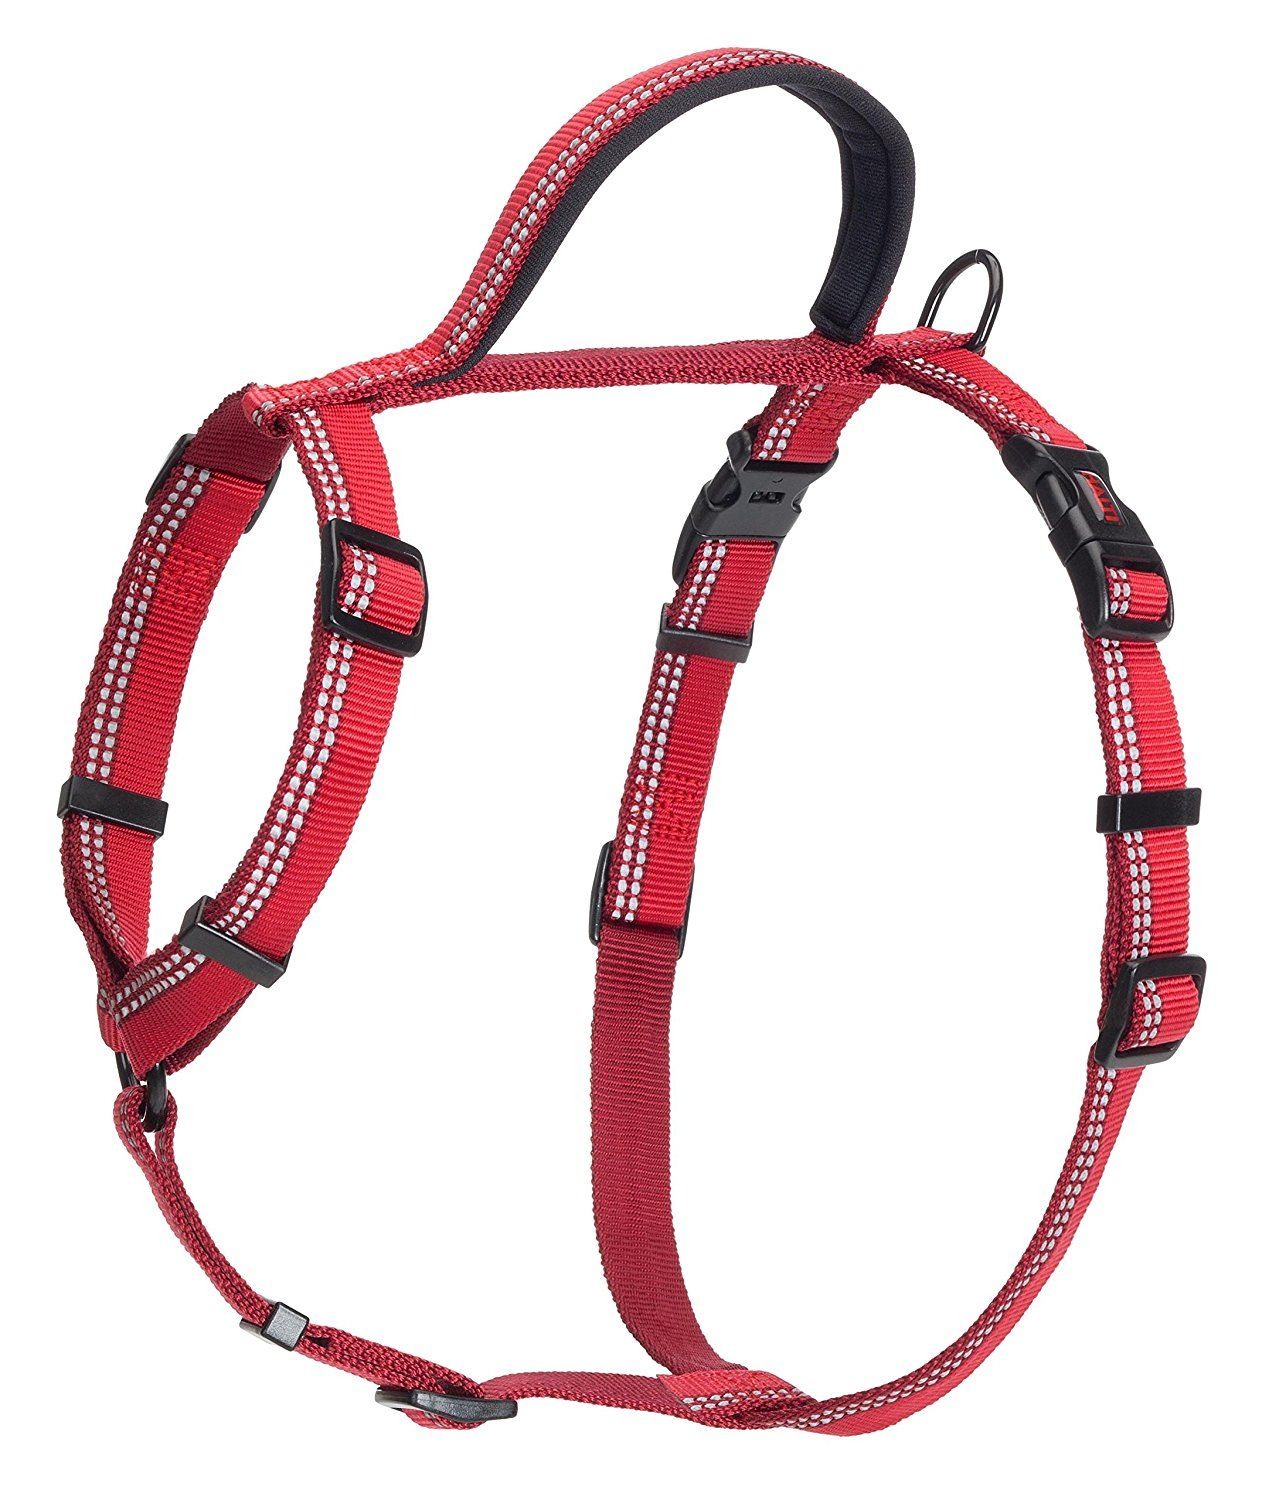 The Company of Animals HALTI Walking Harness, Red, Large * Want additional info? Click on the image.